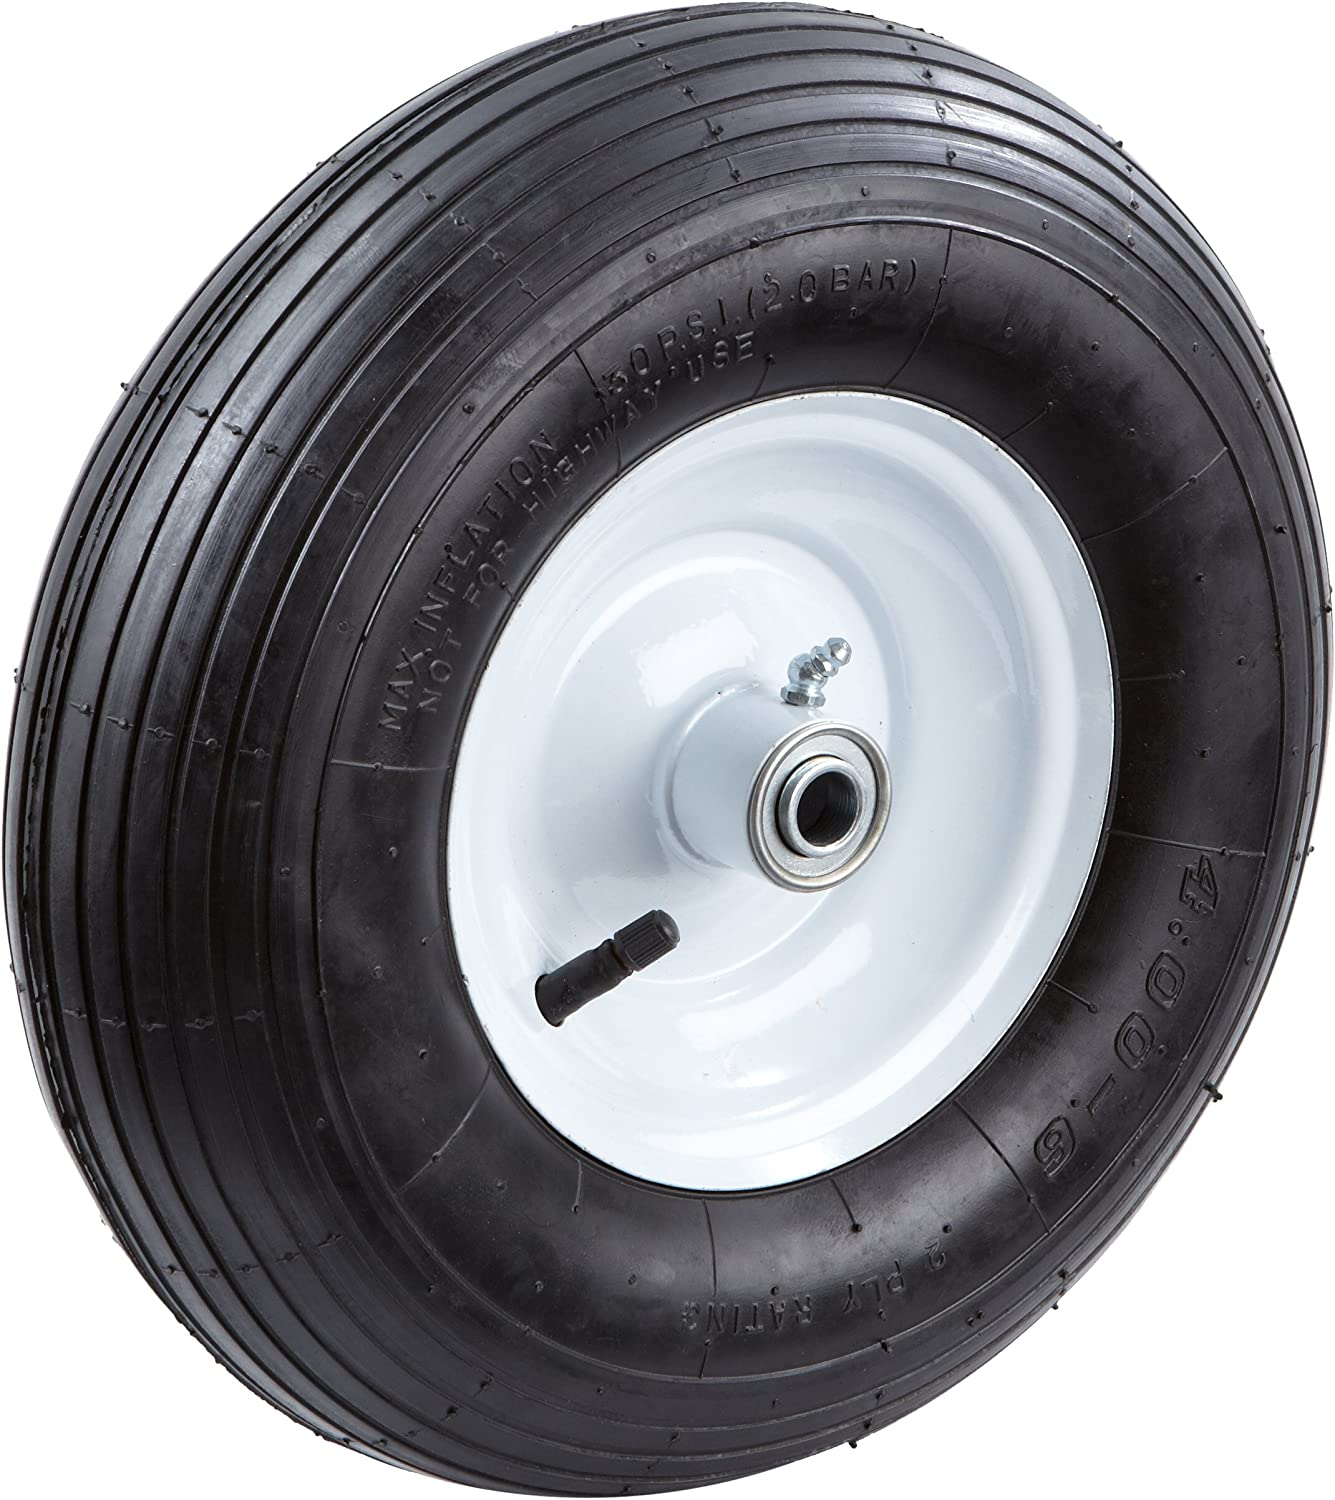 Tricam Farm and Ranch FR2200 Pneumatic Replacement Tire for Wheelbarrows and Utility Carts, 13-Inch